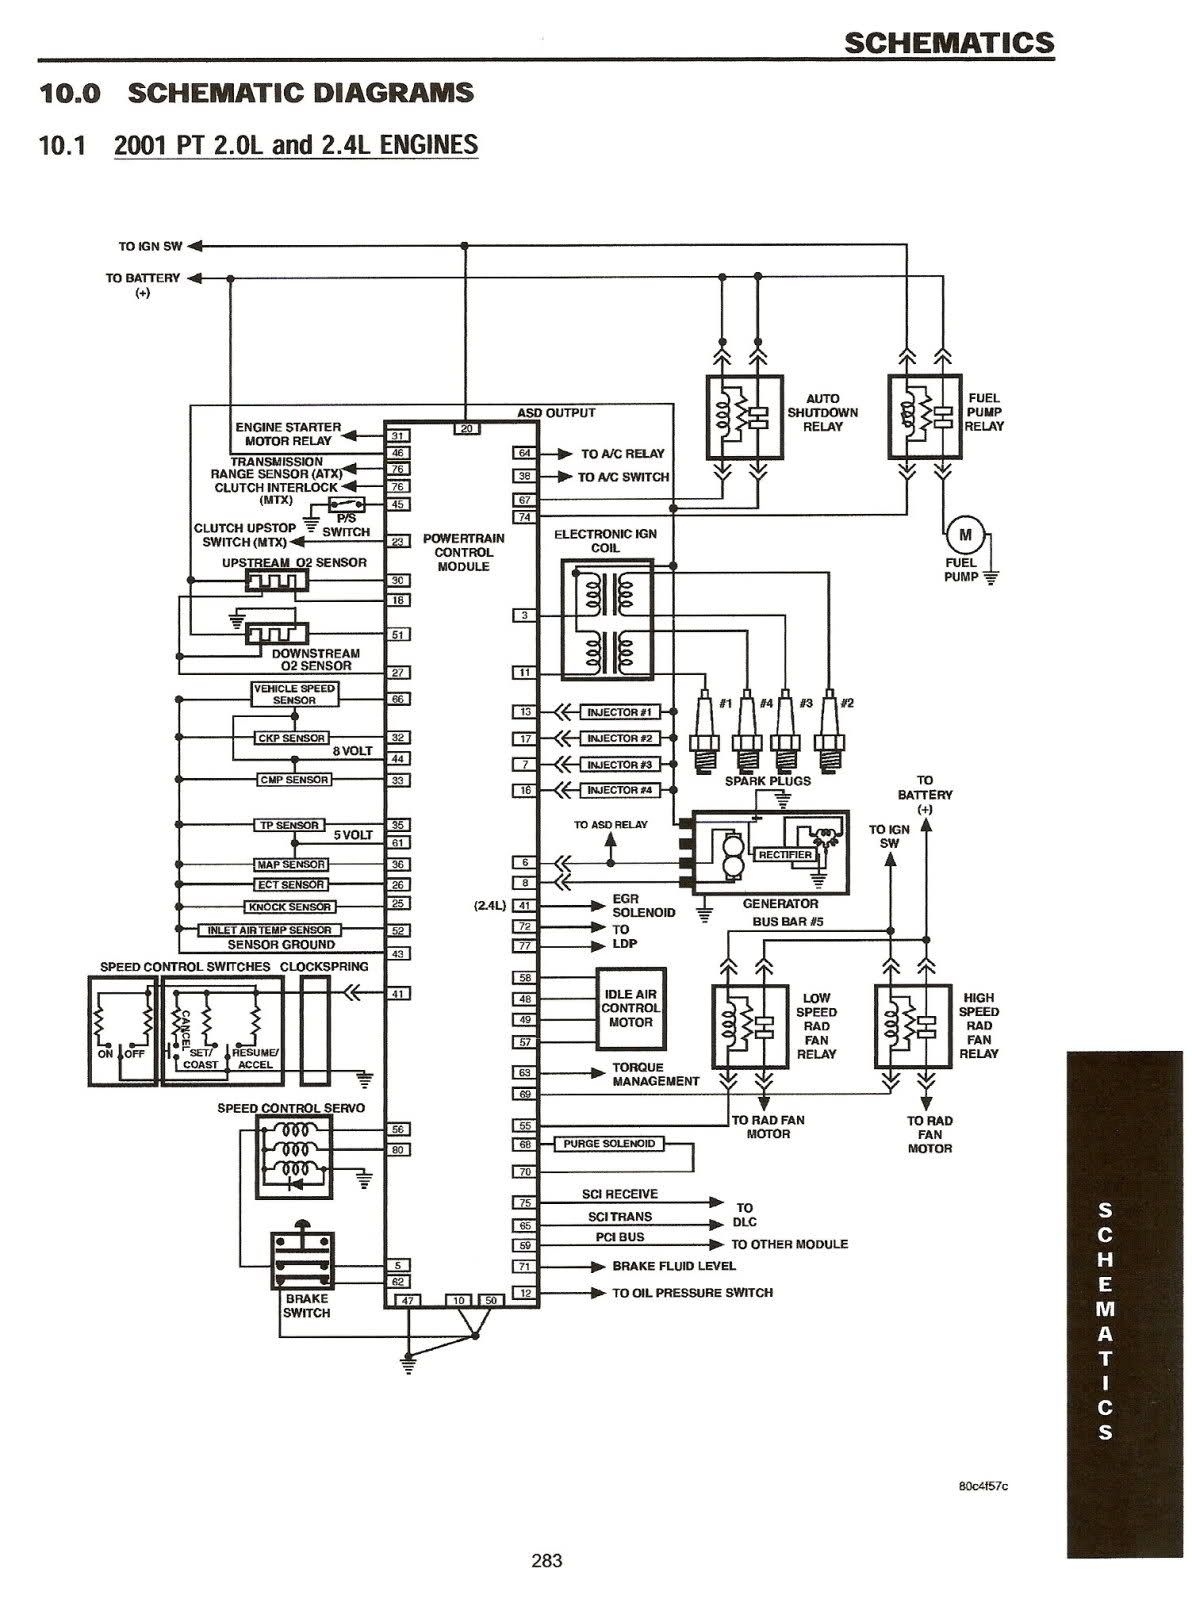 2001 pt cruiser wiring diagram | free wiring diagram 2003 chrysler pt cruiser radio wiring diagram